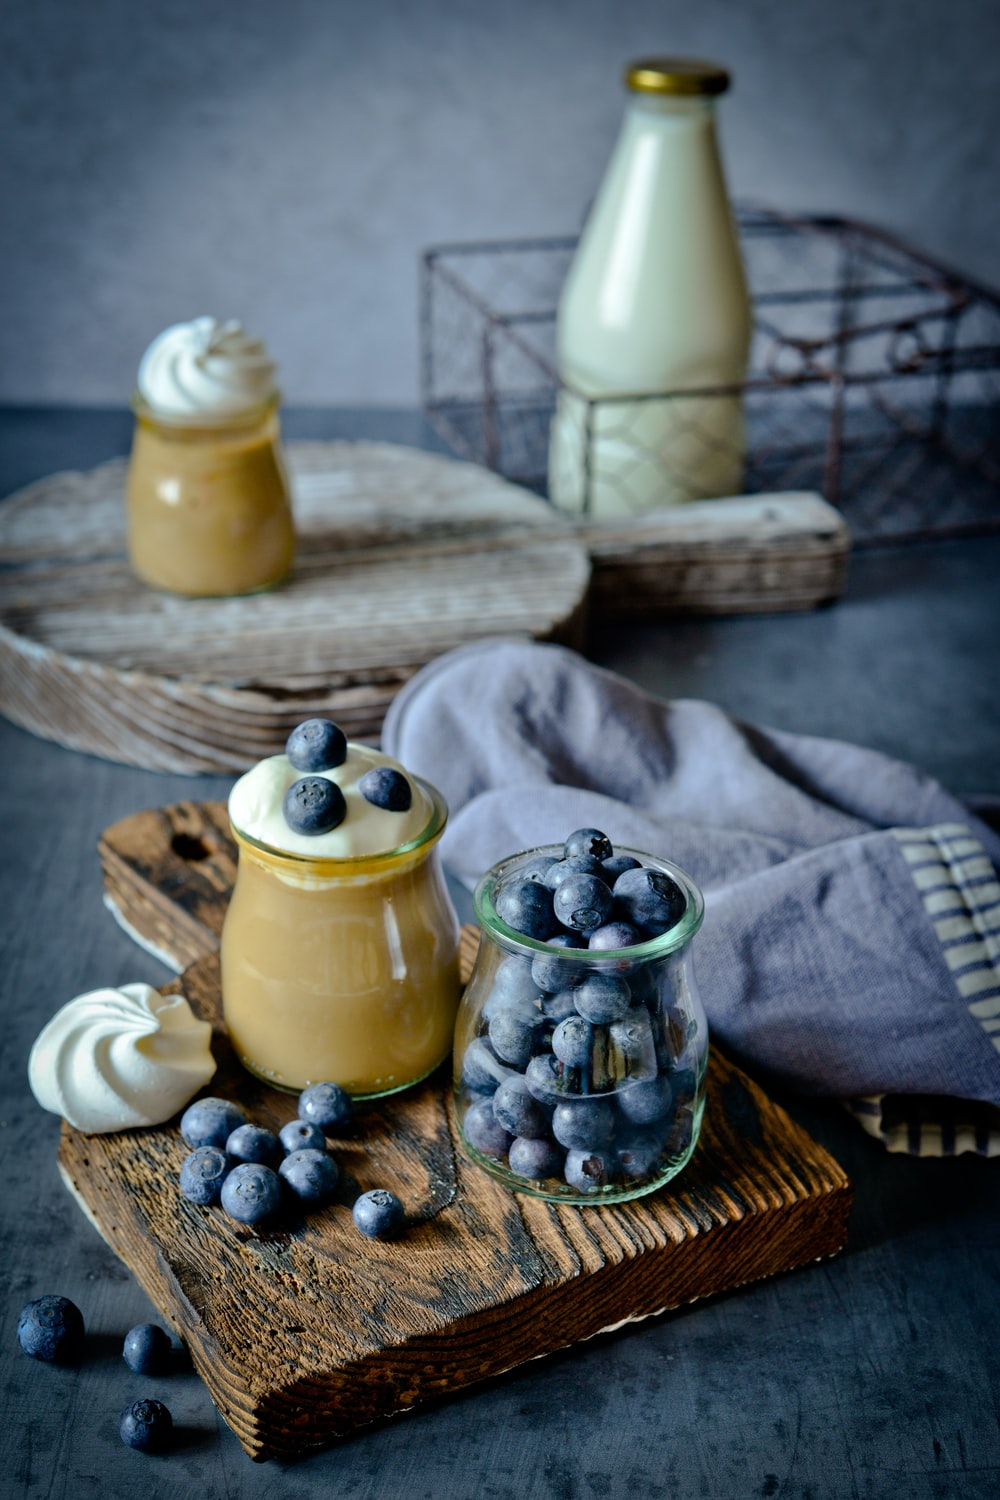 yellow ceramic jar on brown wooden table